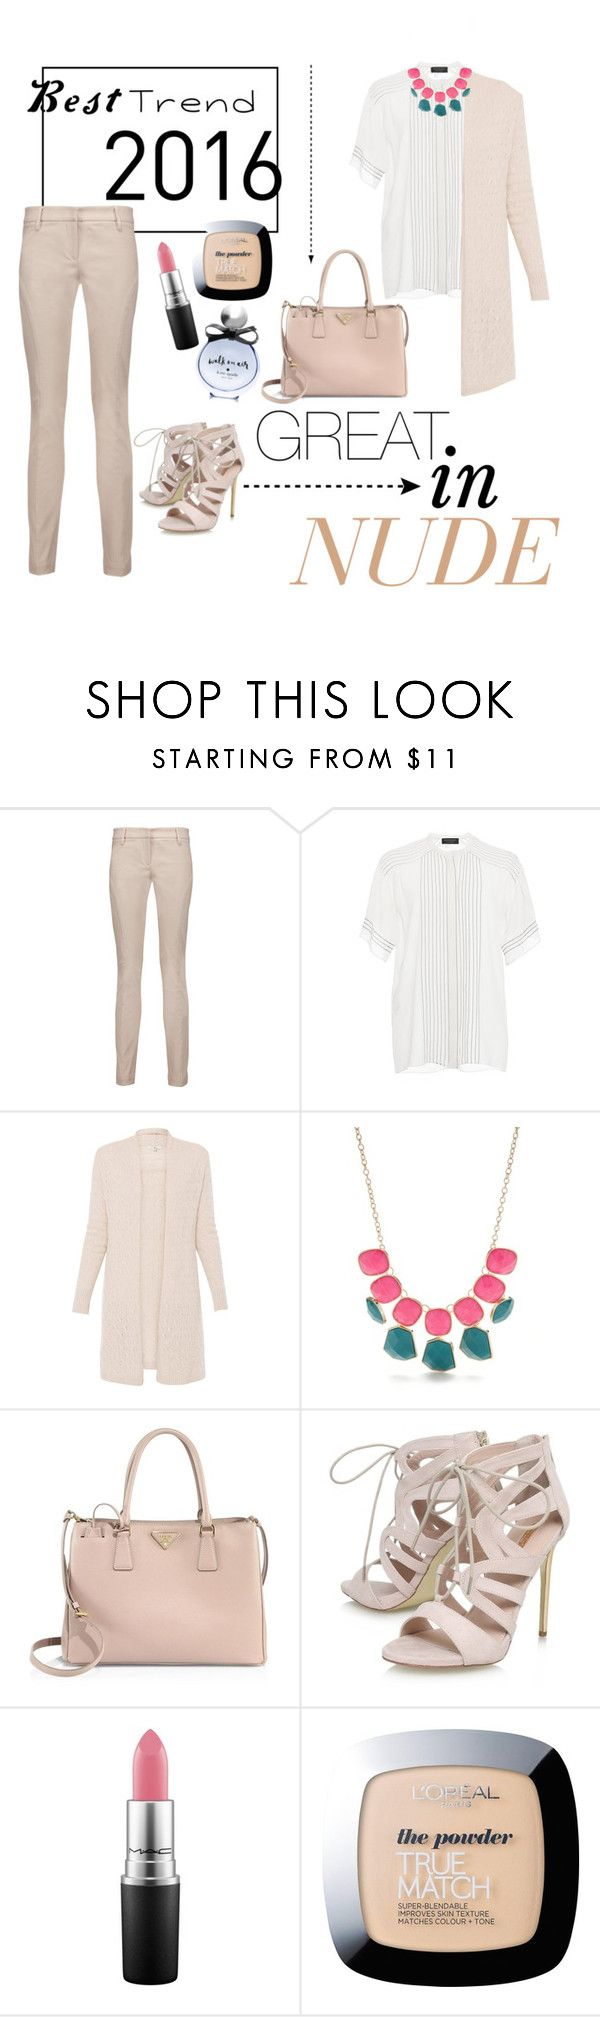 """""""Best Trend"""" by n-khairunnisa ❤ liked on Polyvore featuring Brunello Cucinelli, Burberry, New Directions, Prada, Carvela, MAC Cosmetics, L'Oréal Paris and Kate Spade"""